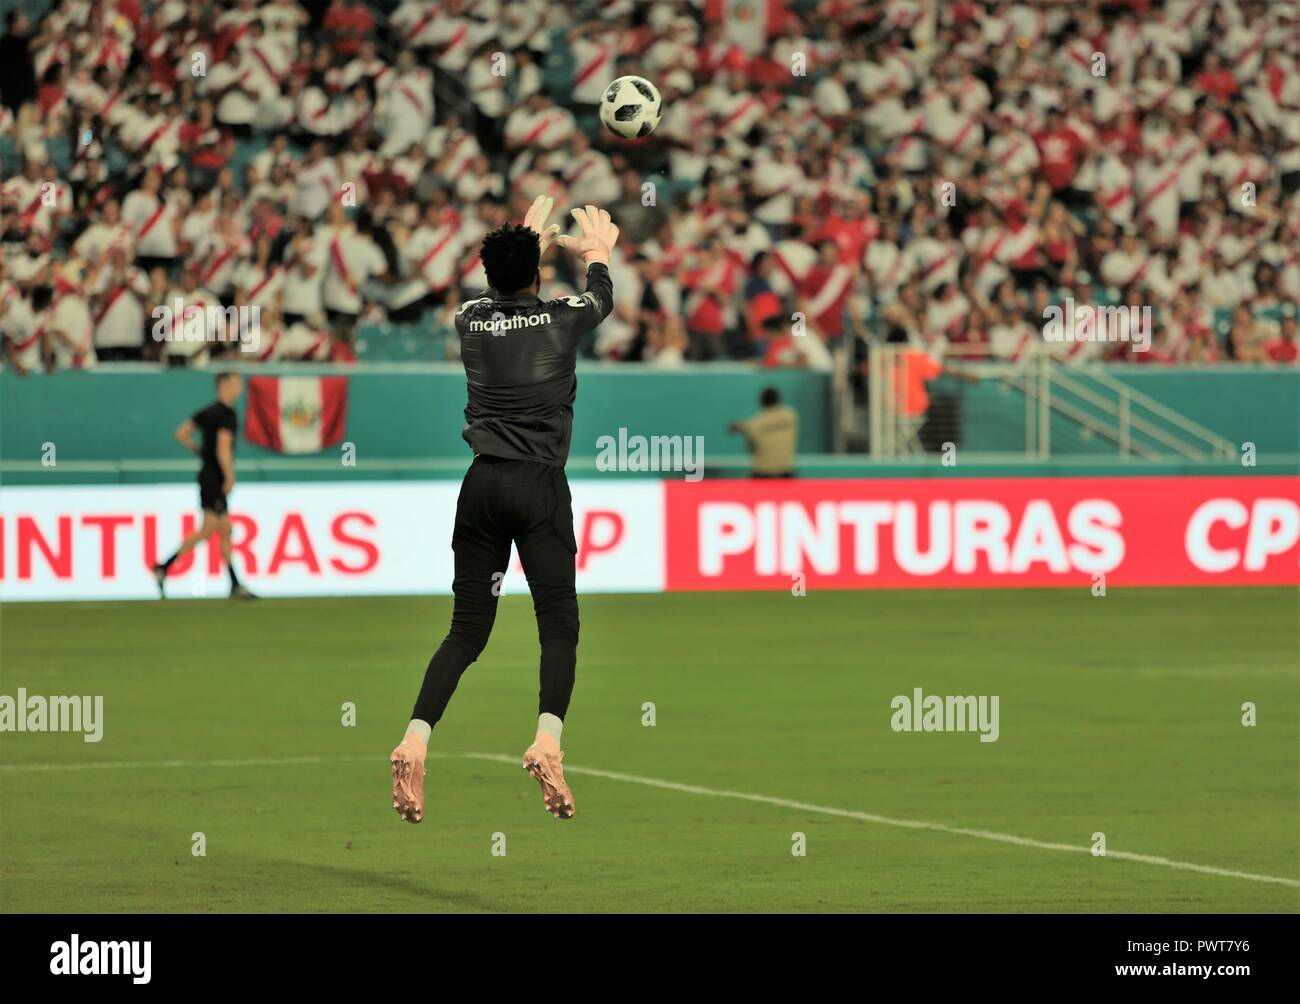 Miami, Florida. 12th Oct, 2018. Soccer players practice/warm up, Chile vs Peru at Hard Rock Stadium in Miami, Florida. Oct 12, 2018. Peru won 3-0. - Stock Image